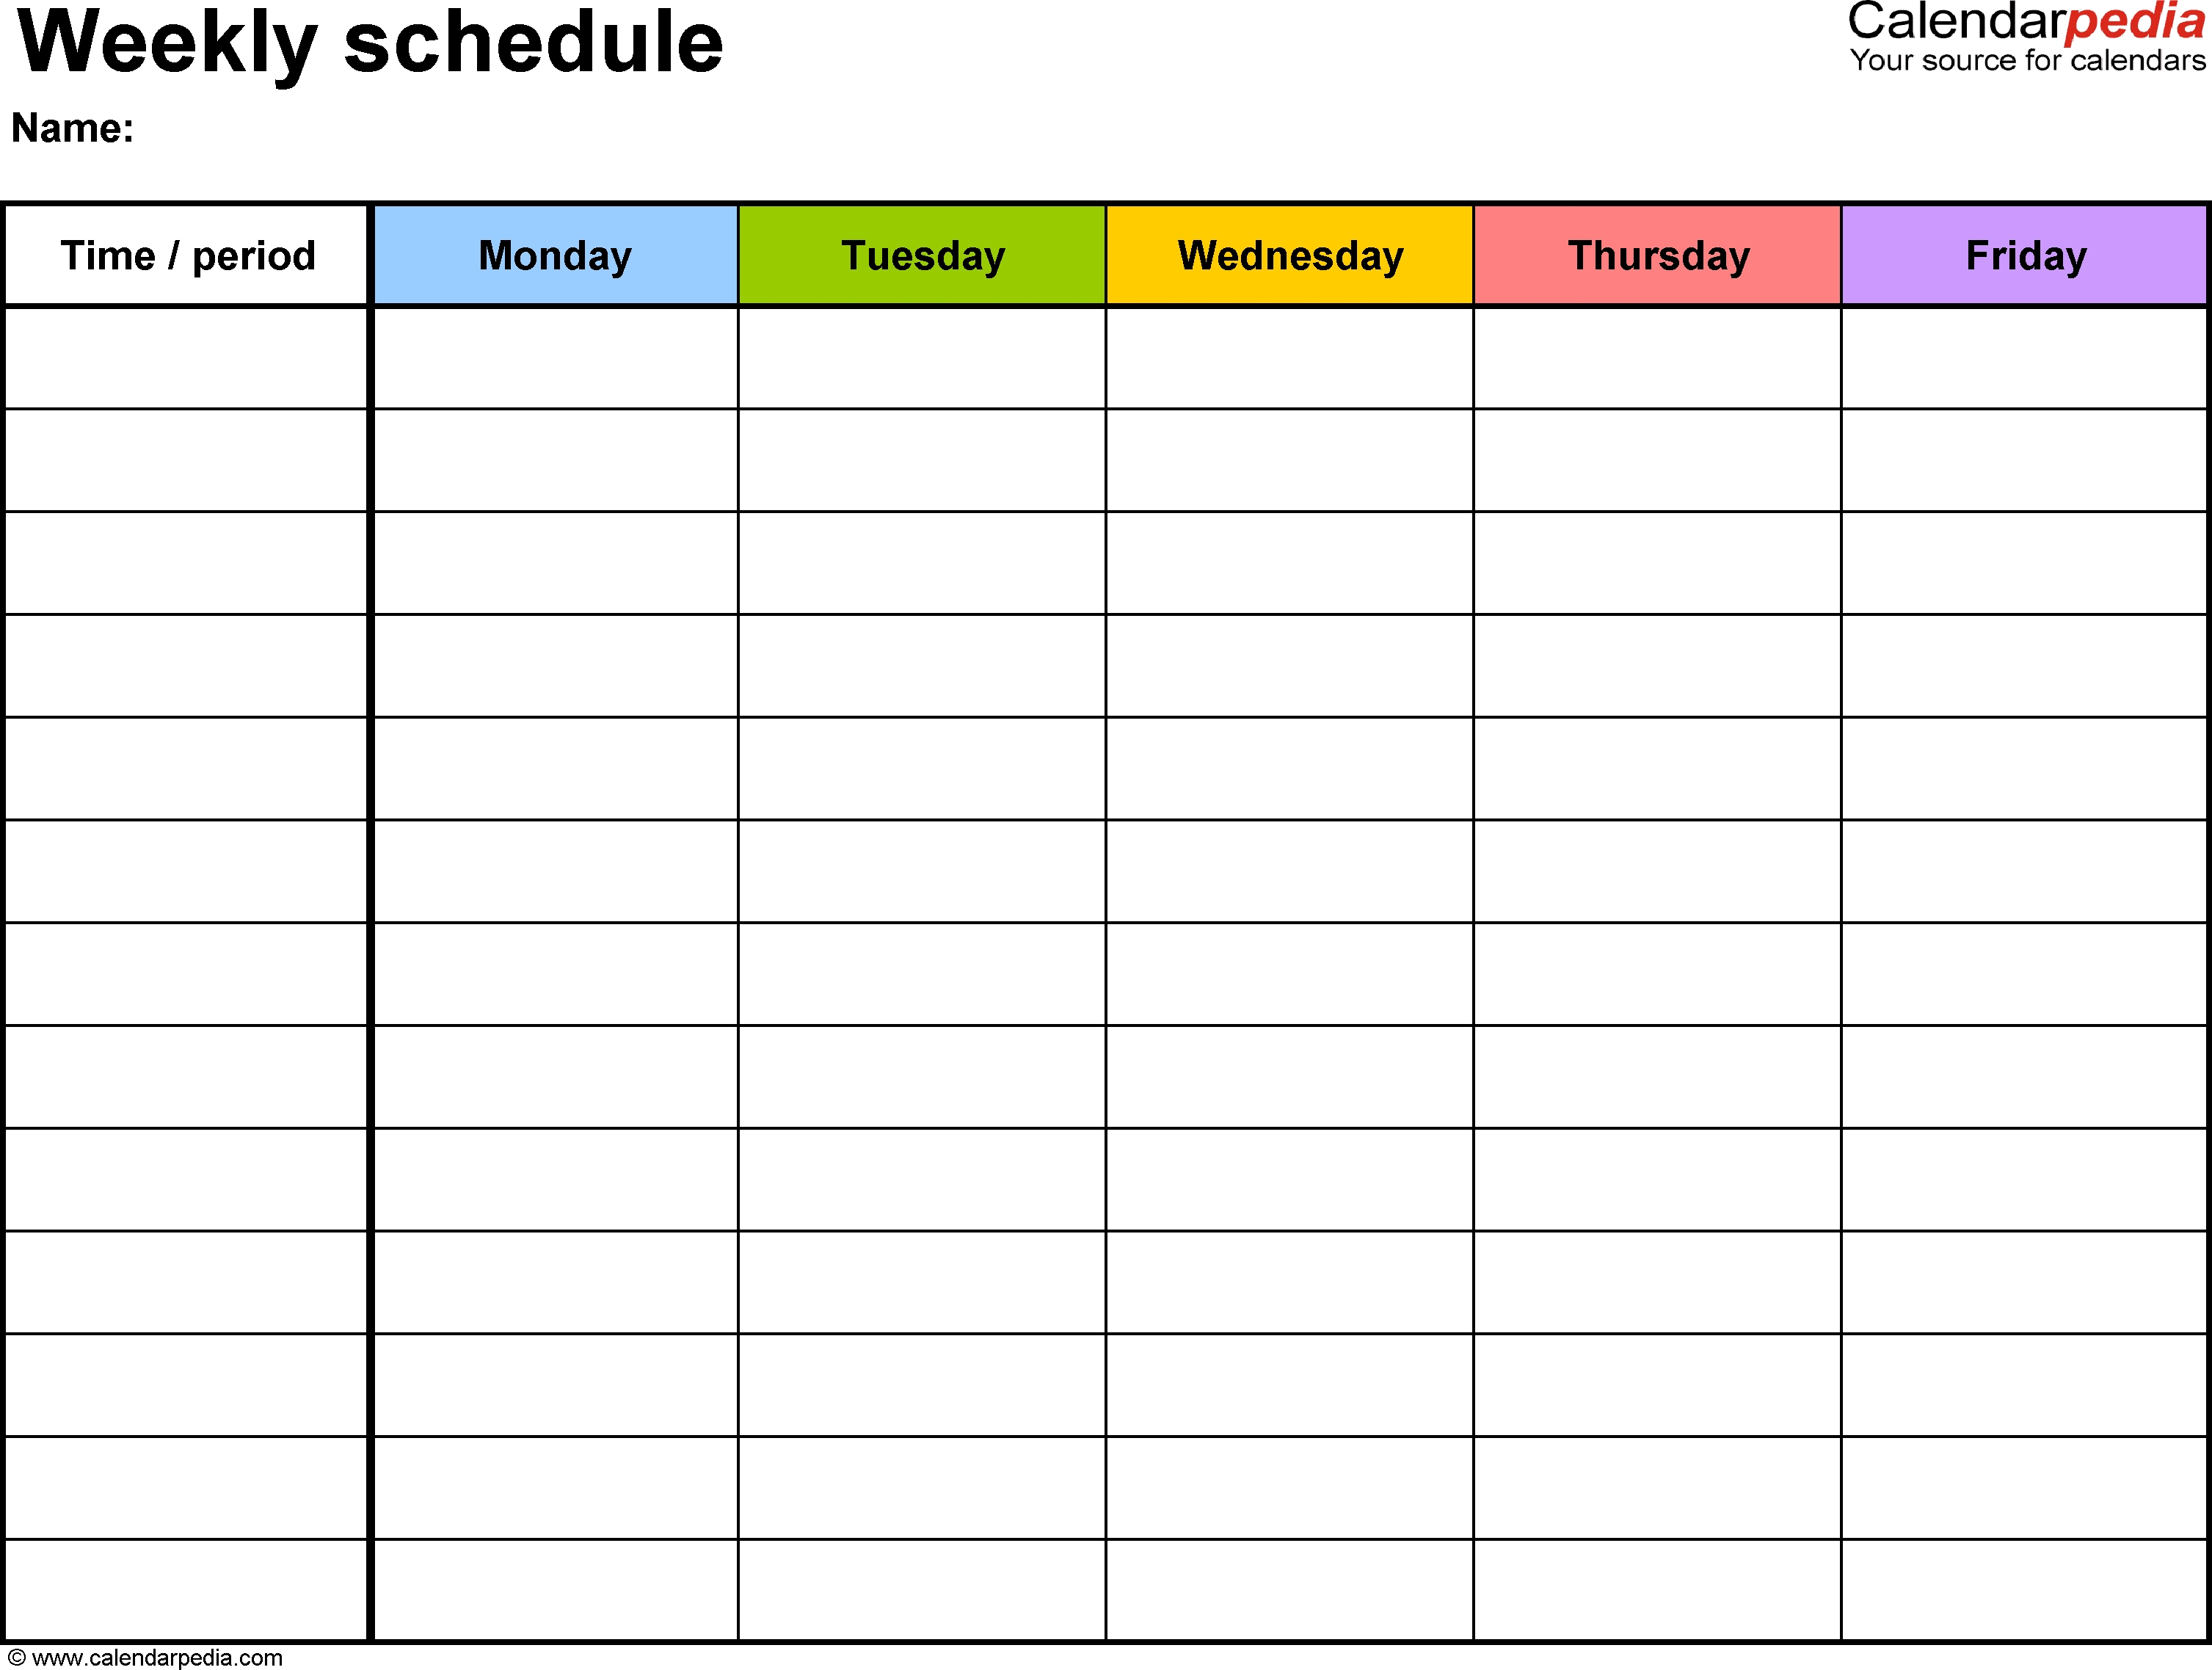 Free Weekly Schedule Templates For Word - 18 Templates throughout Blank 7 Day Week Calendar